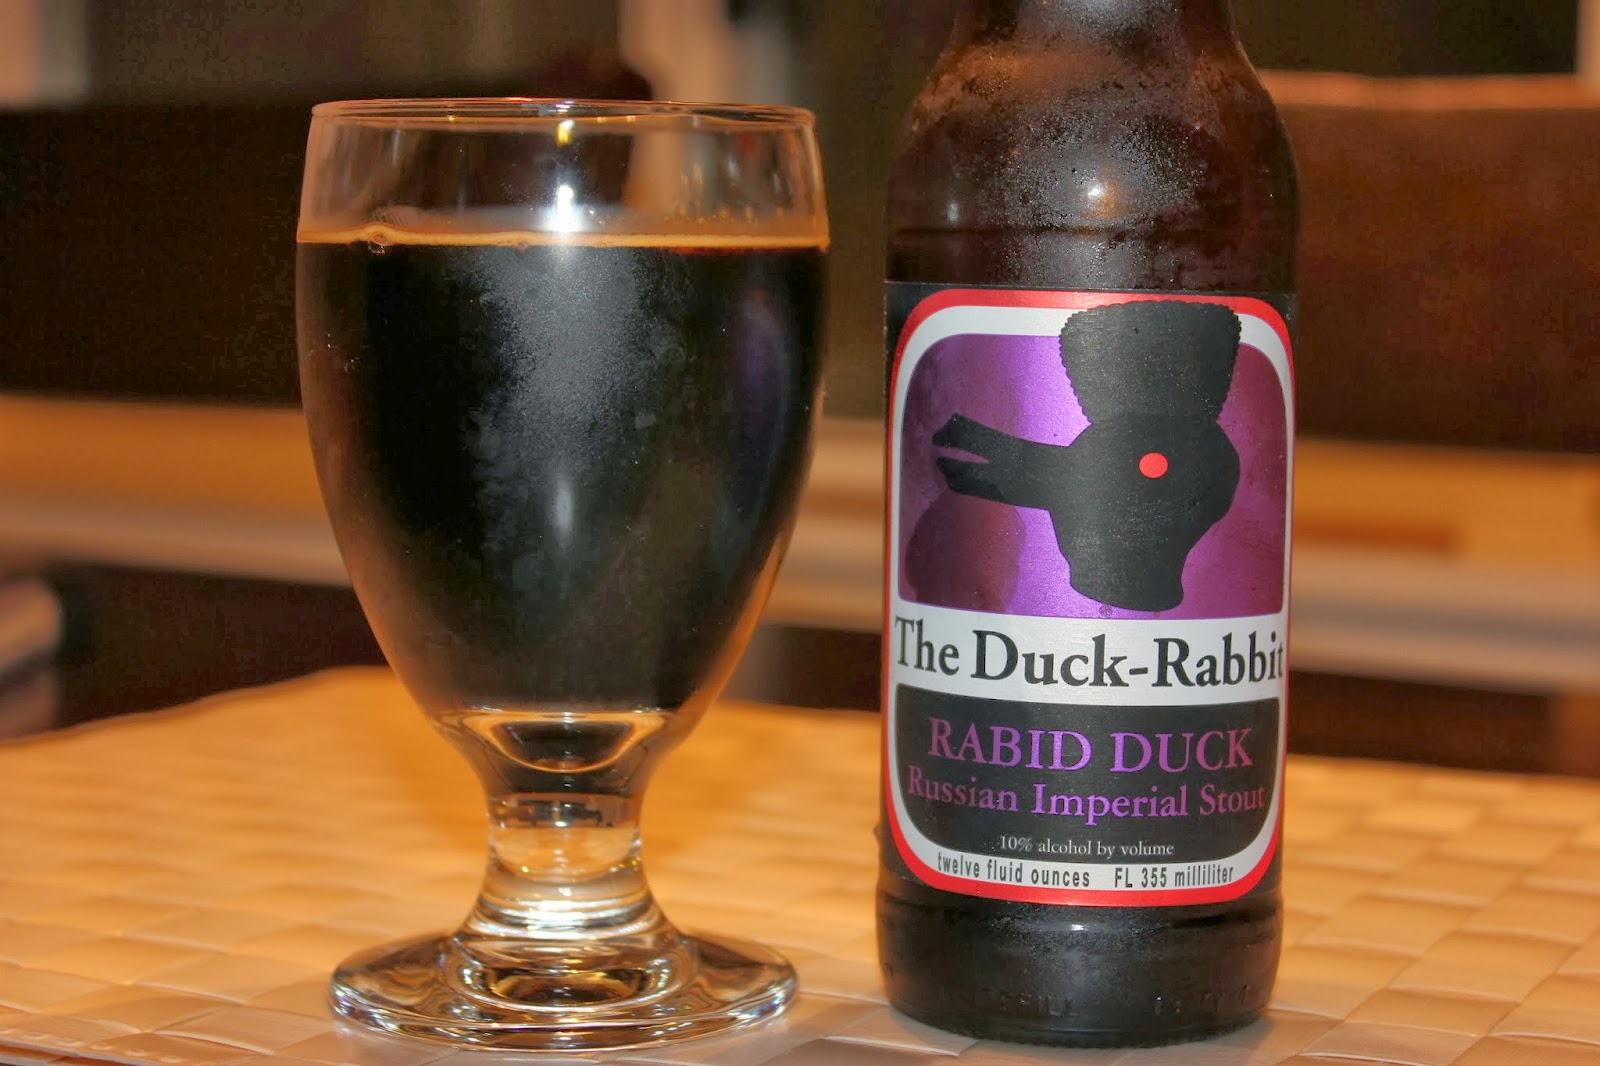 The Duck-Rabbit Rabid Duck Russian Imperial Stout IMG_1038